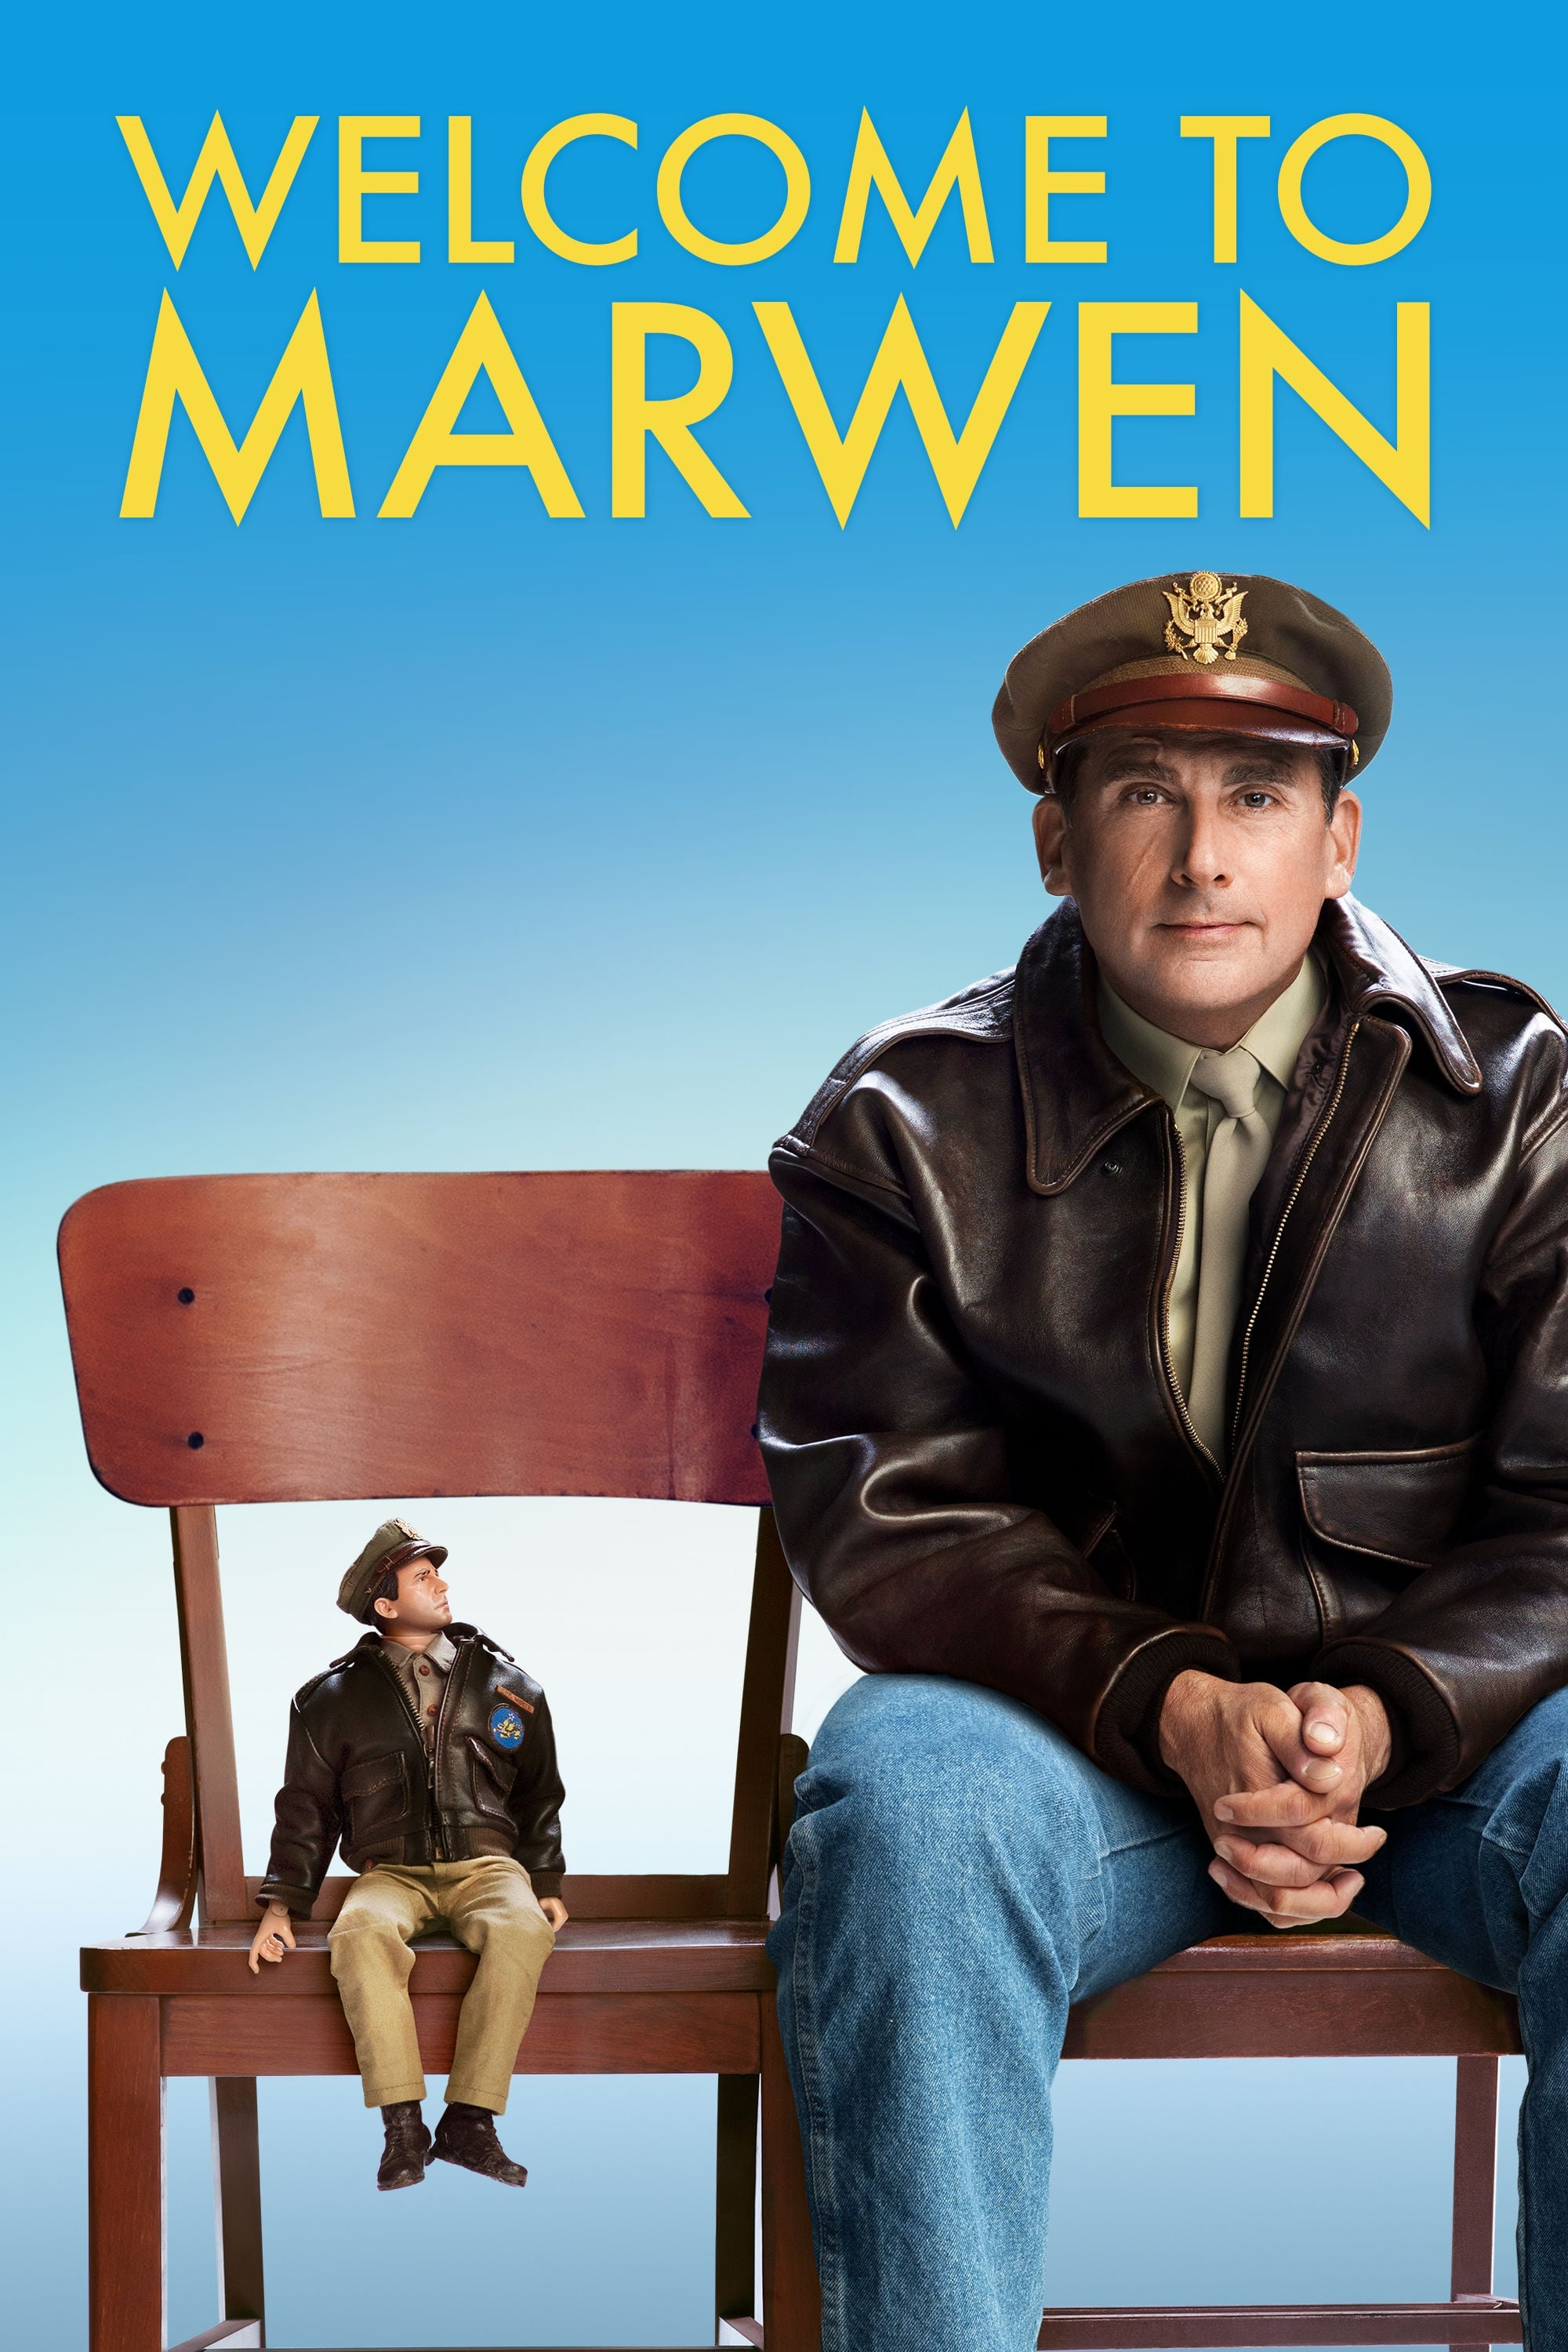 Welcome to Marwen (2018) BluRay 1080p [4.98 GB] 720p [1.36 GB] 480p [598 MB] Dual Audio [Hindi-English DD 5.1] | G-Drive